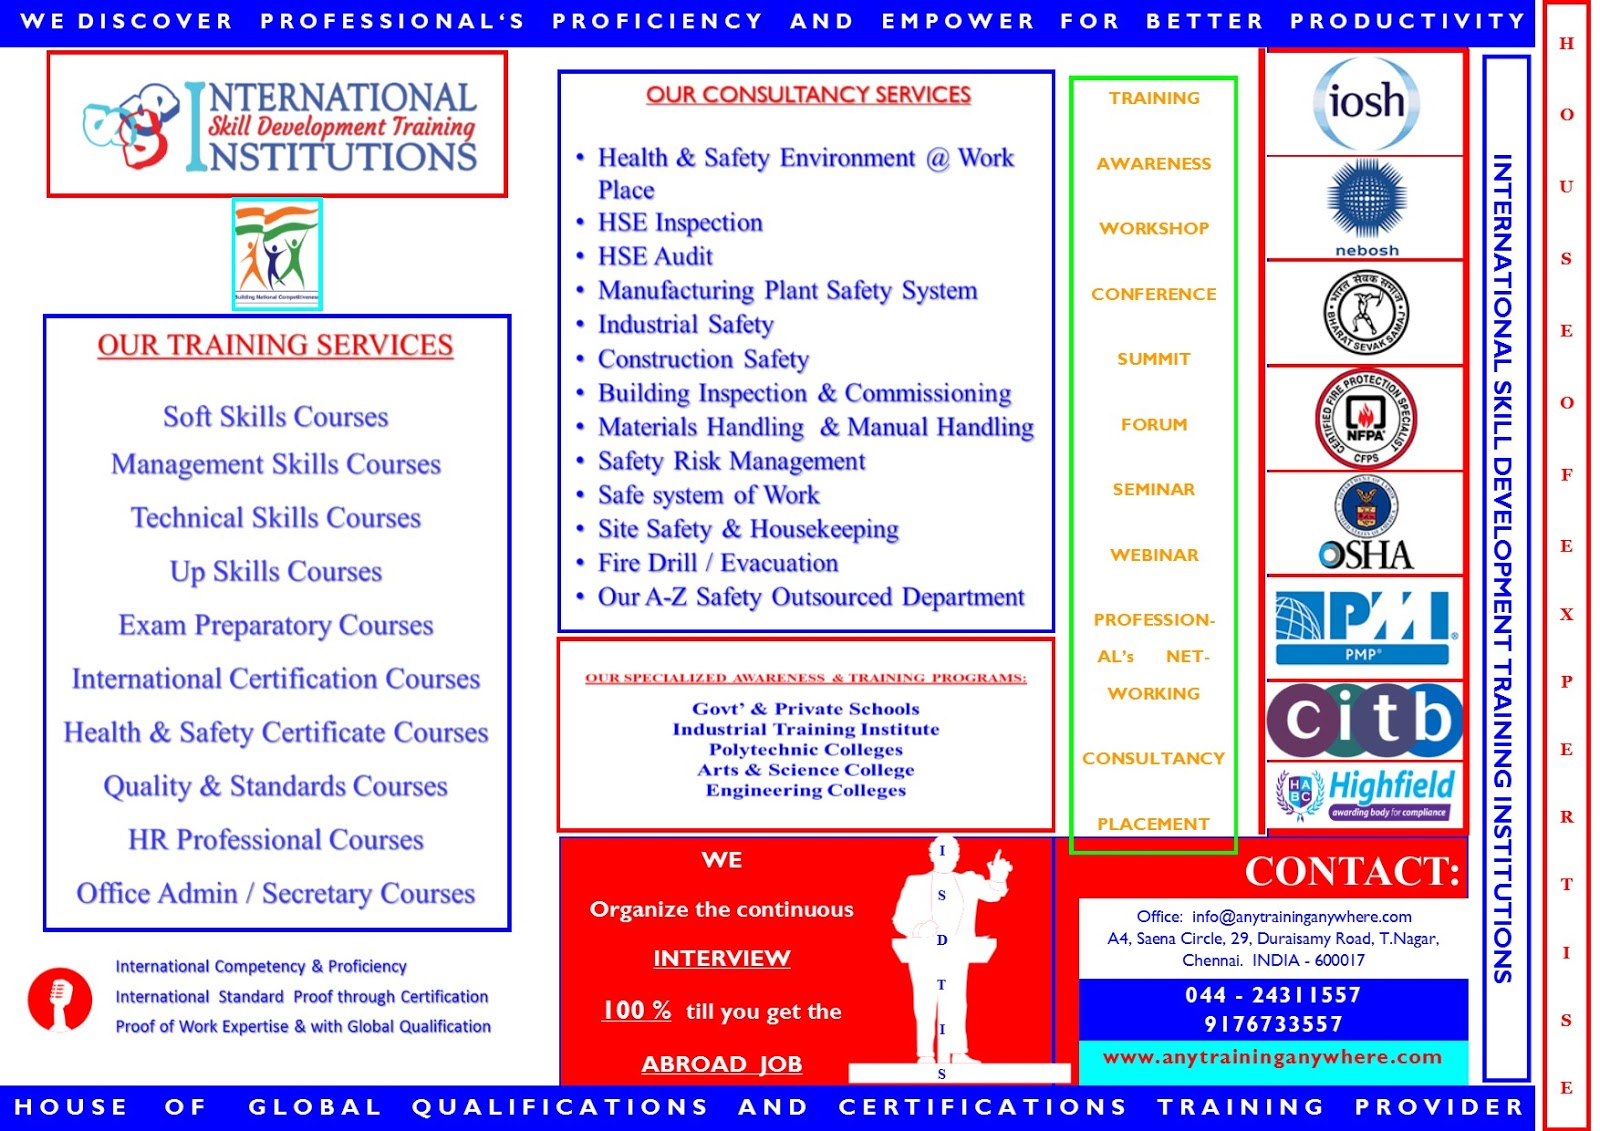 Training skills development international certification courses 5 iso quality standard courses 6 risk management courses 7 employment oriented courses 8 up skills courses xflitez Image collections